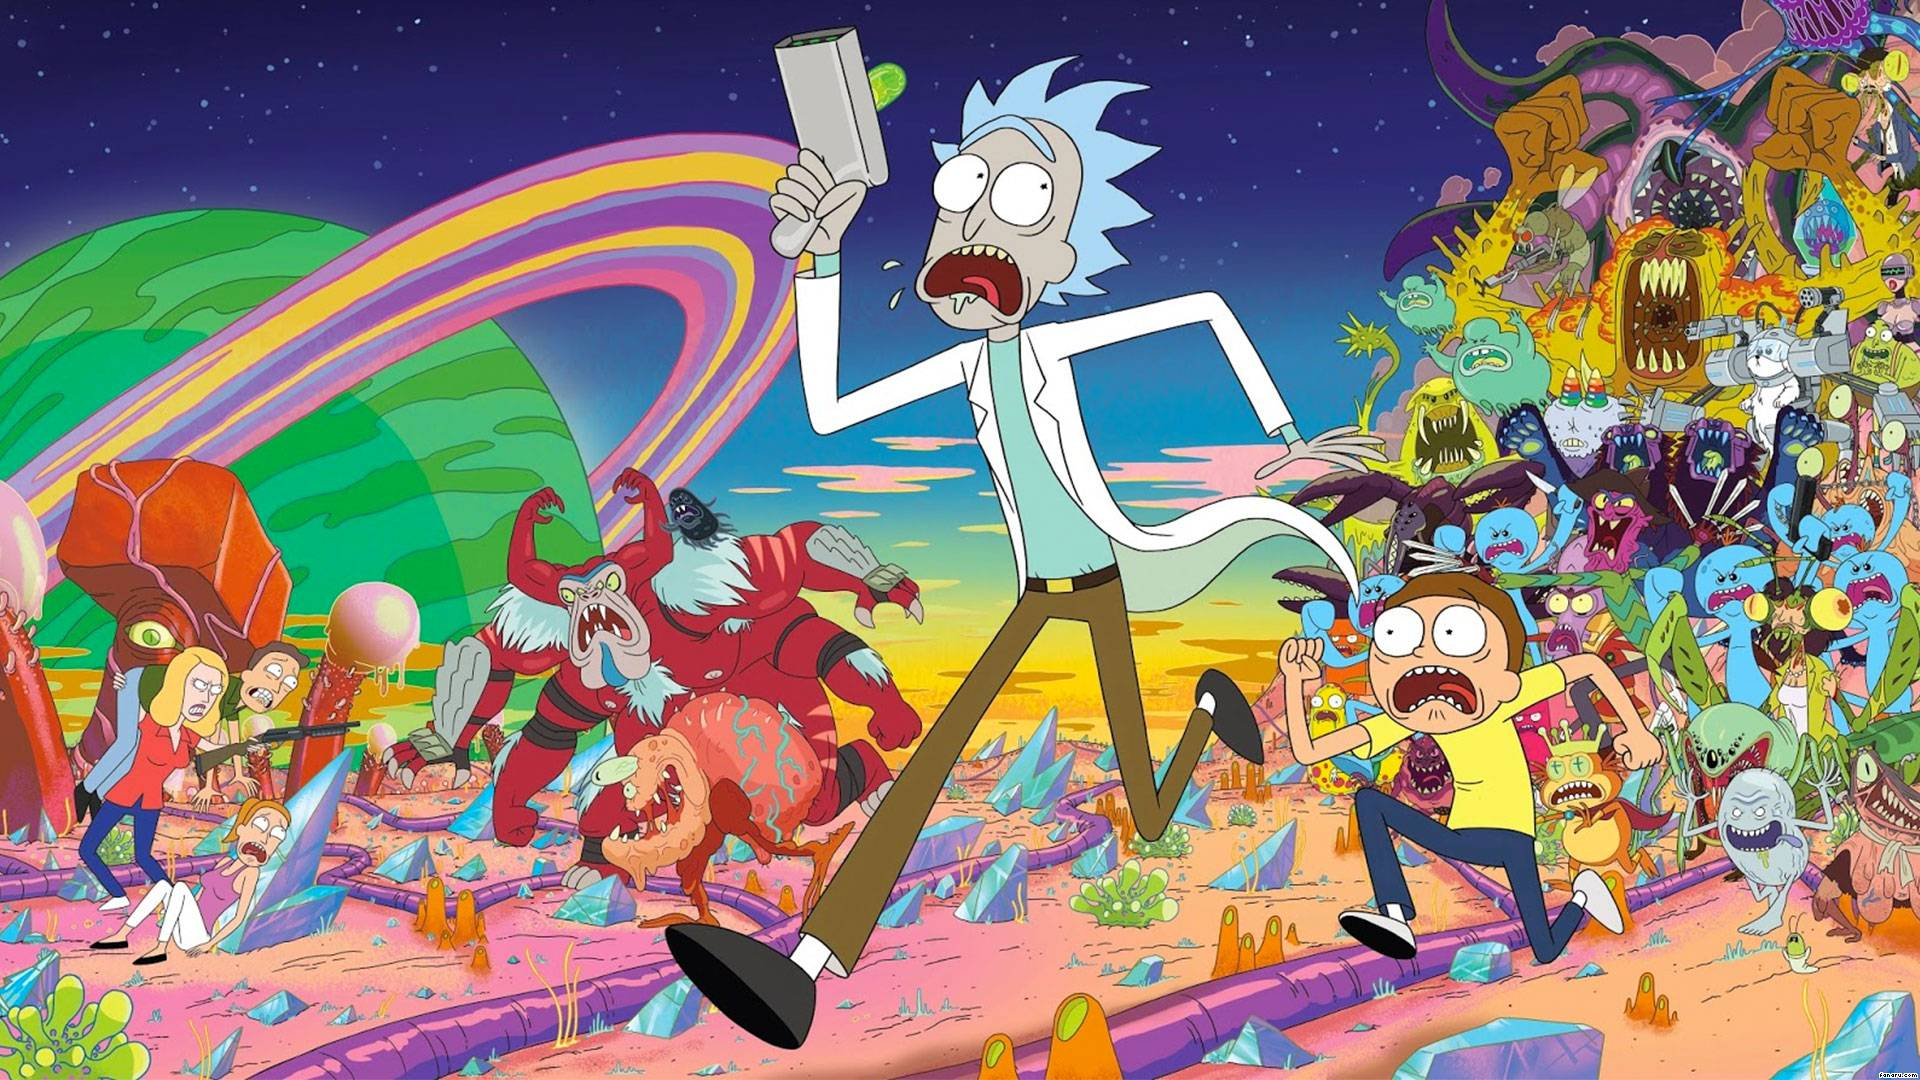 Rick and Morty HD Wallpapers   Top Rick and Morty HD 1920x1080